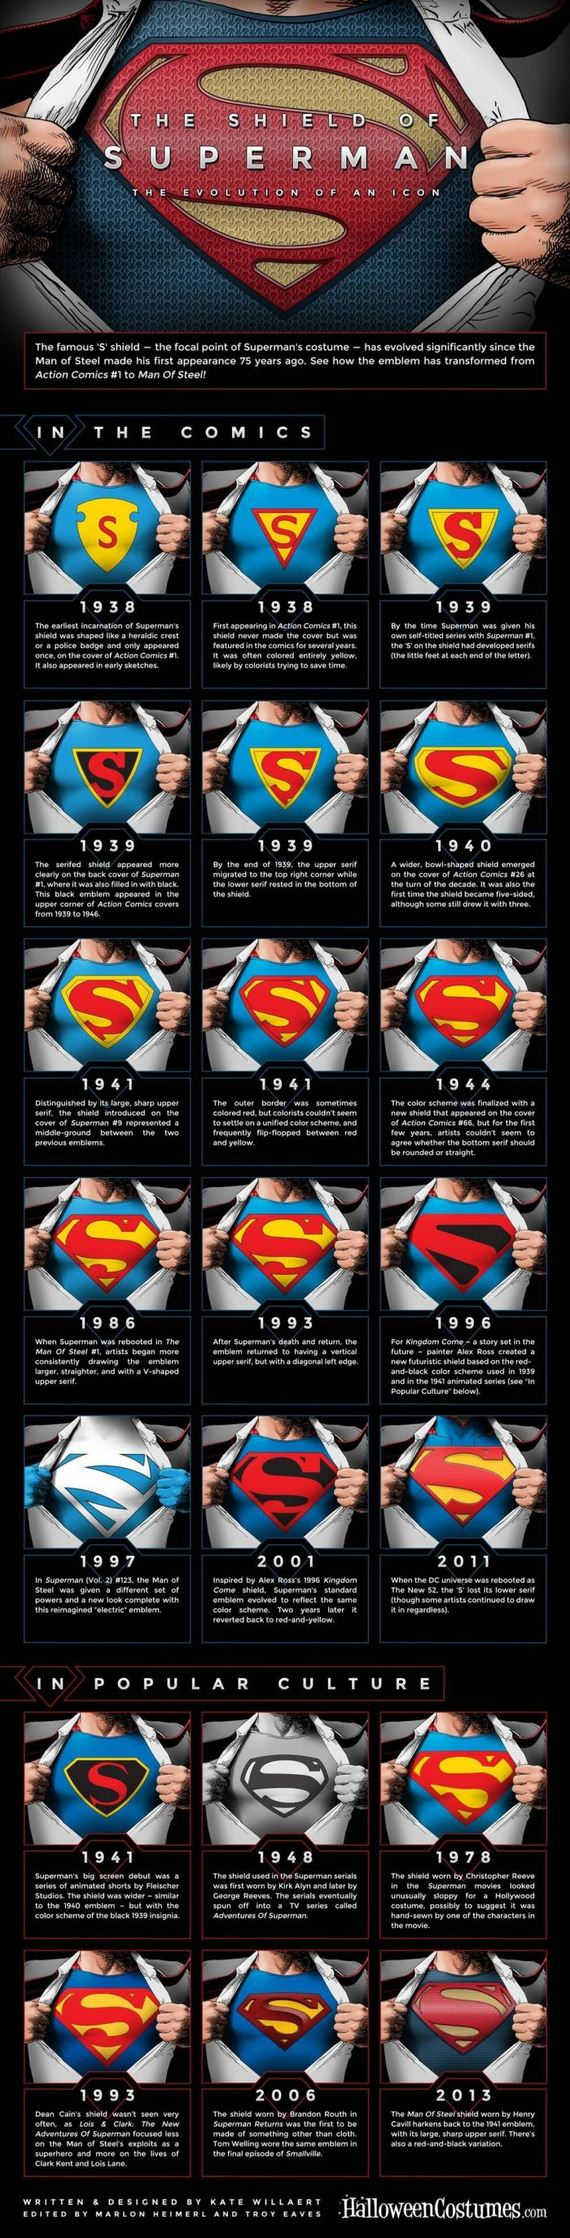 evolution_of_supermans